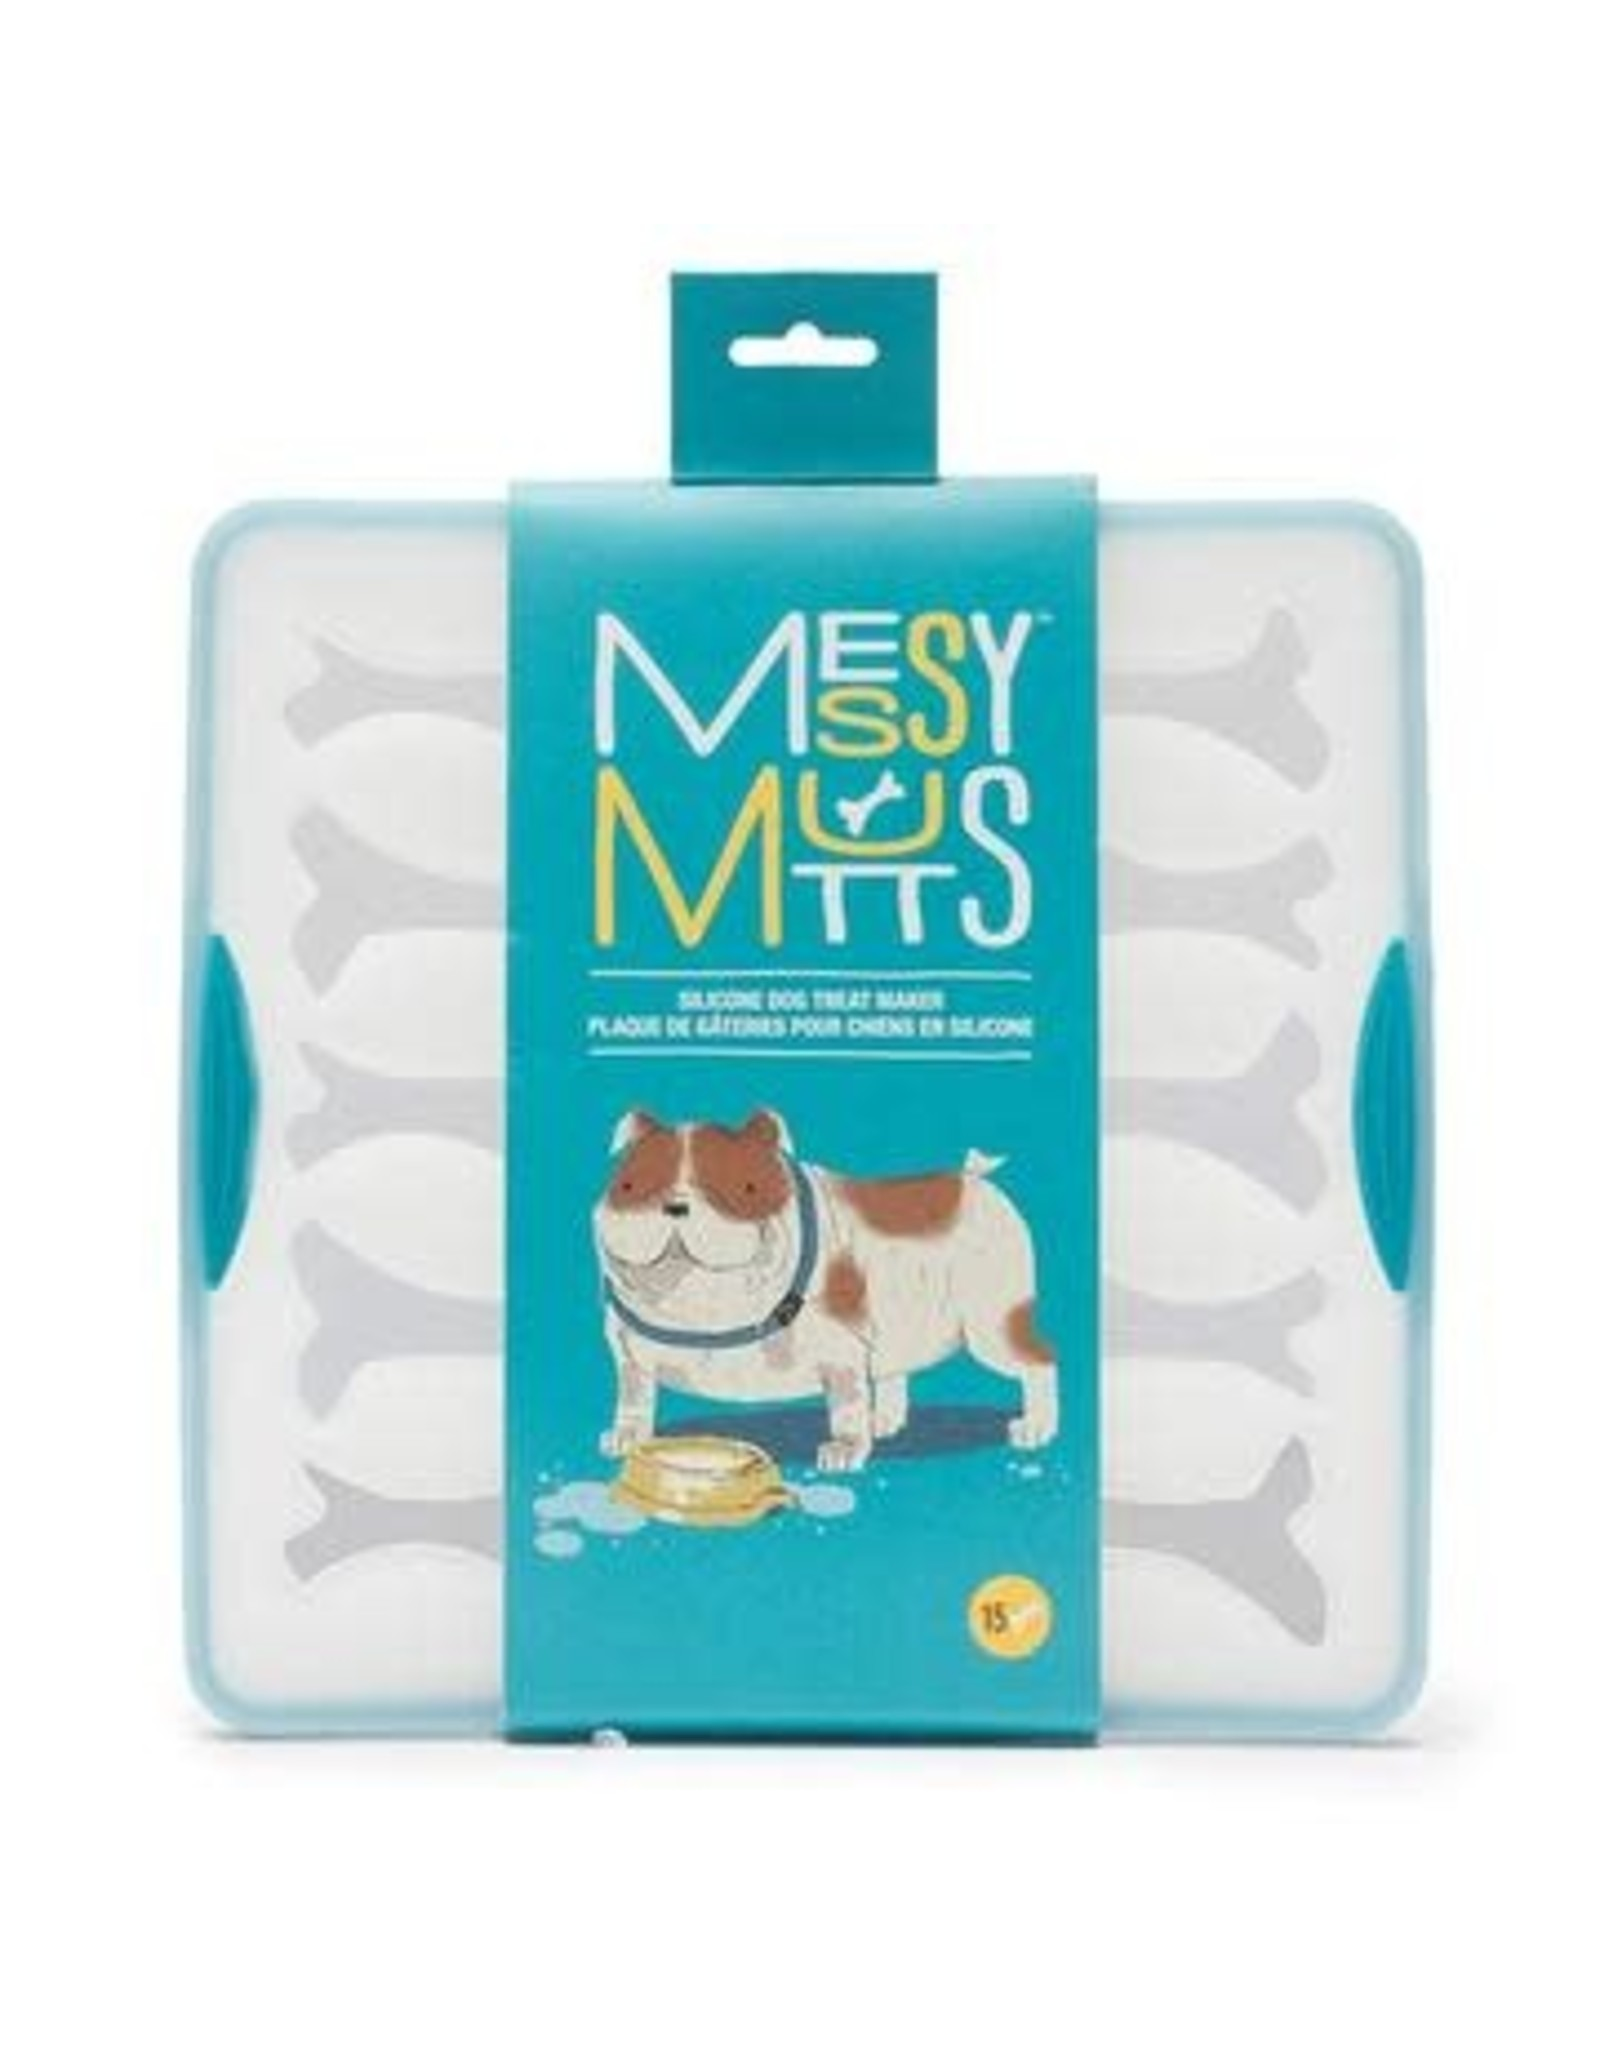 Messy Mutts Messy Mutts Silicone Bake and Freeze Treat Maker 15 Small Bones